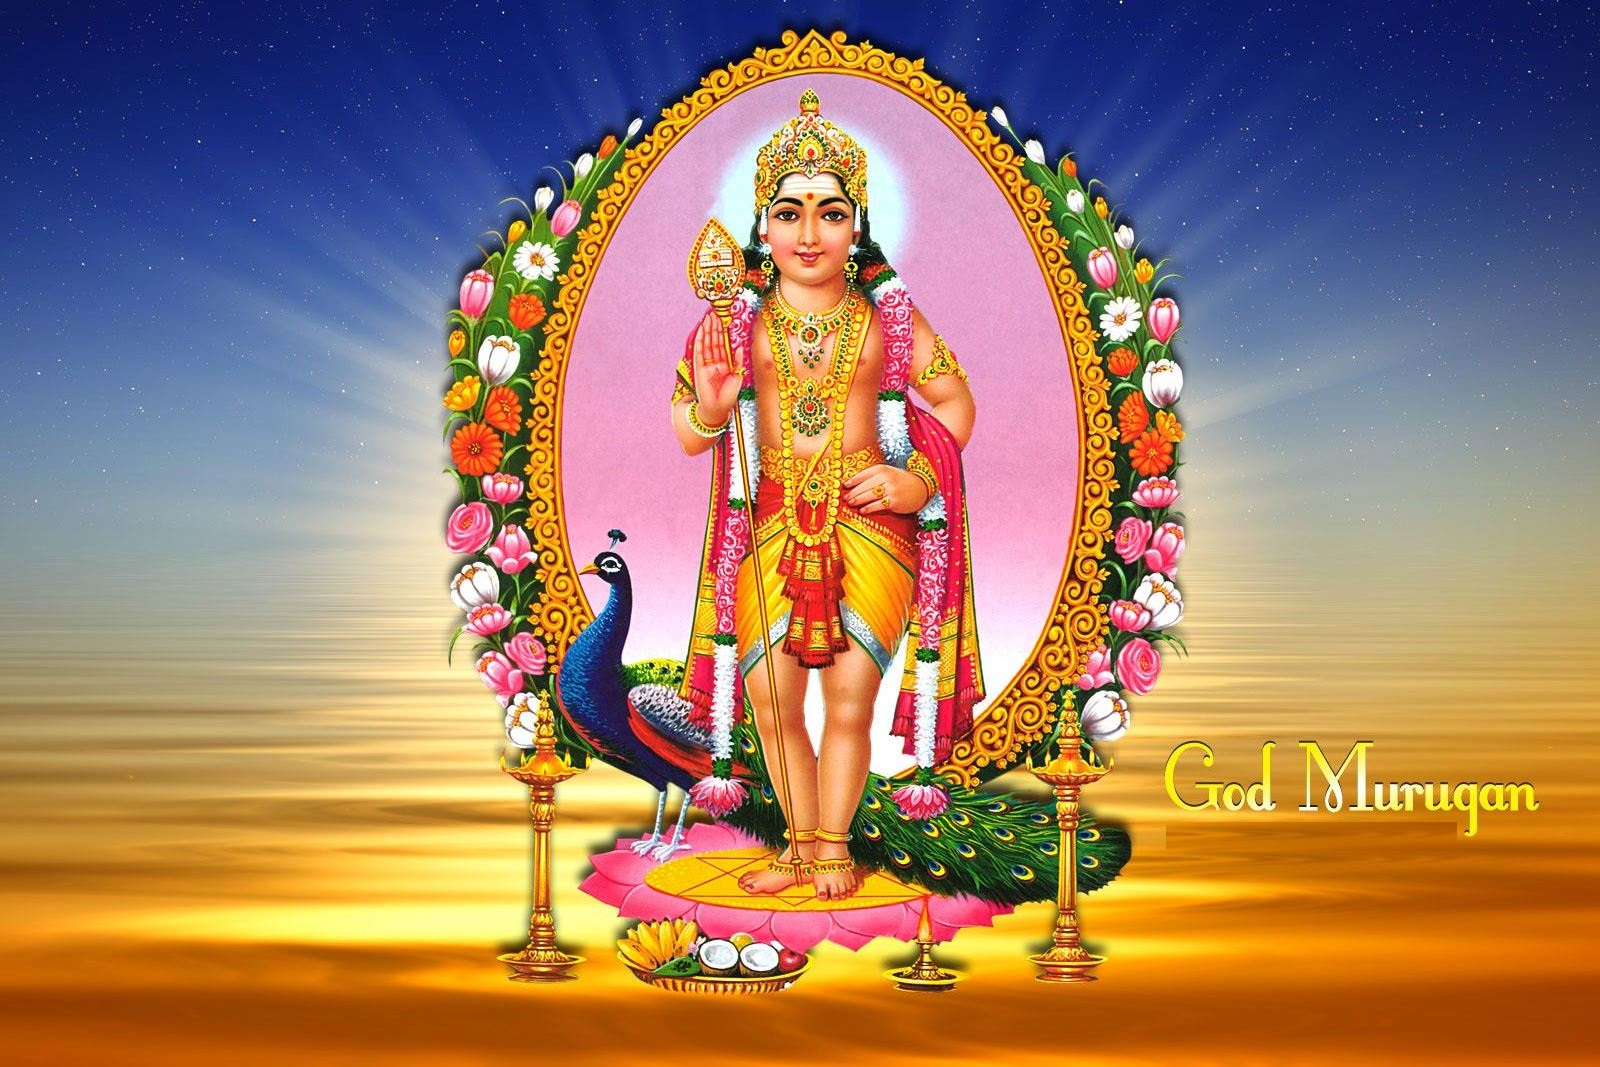 Lord Murugan Images Gods Images Free Download Hd 1600x1067 Wallpaper Teahub Io